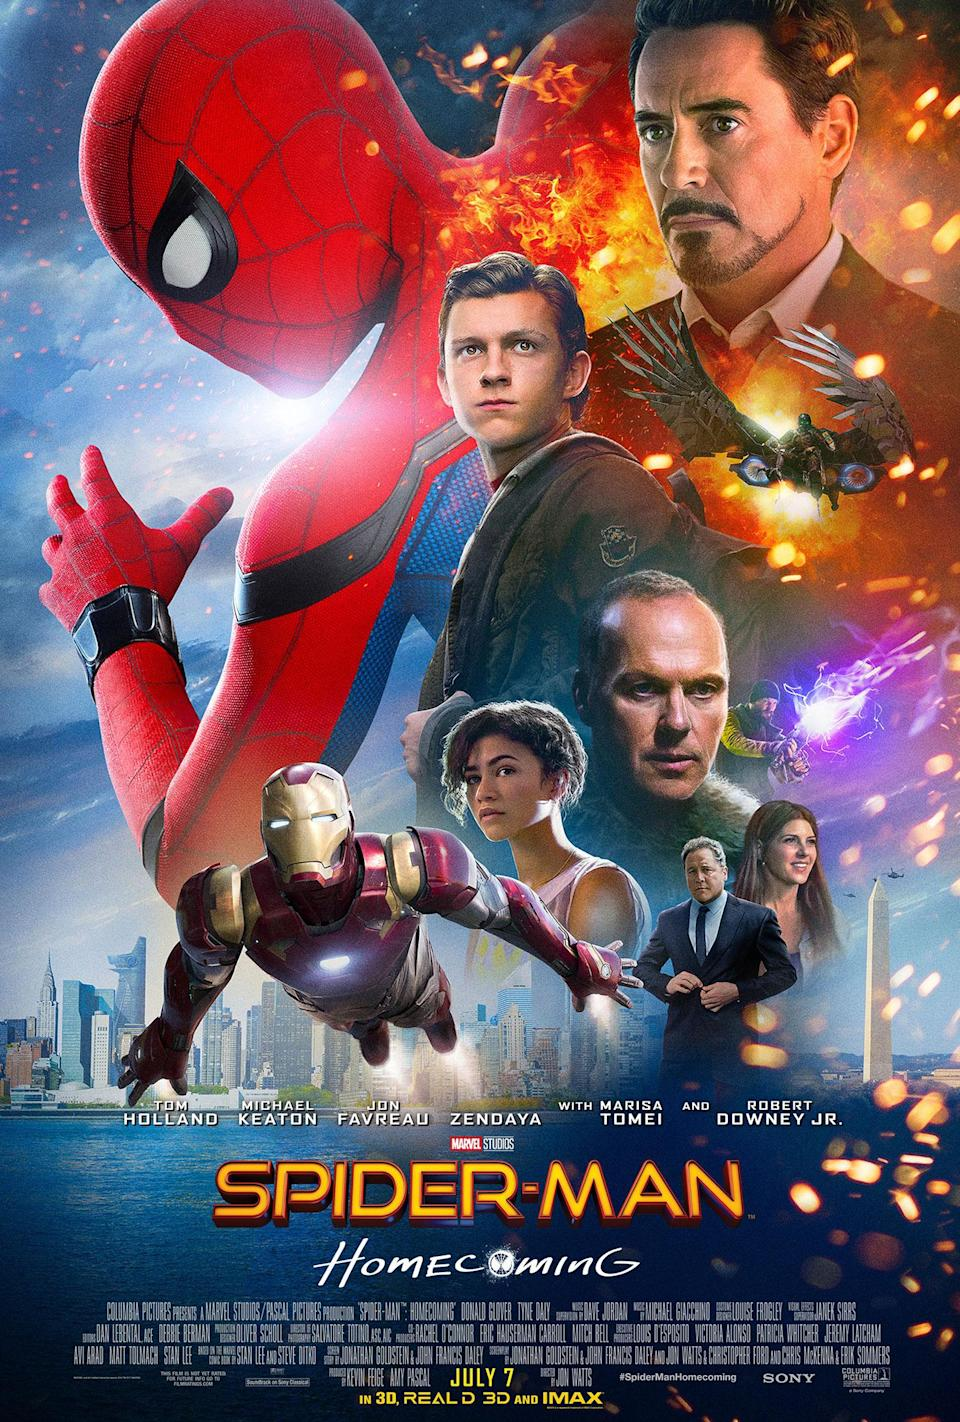 <p>It's hard to single out what we liked least about this garish one-sheet for Spider-Man 3.0. We'll settle for an abundance of sparks from no place in particular, a horrible clash of two different city skylines and – if you zoom in really, really closely – the remnants of green-screen among the strands of Zendaya's hair. And don't forget Iron Man's basic 'lying on a table' flight pose. </p>